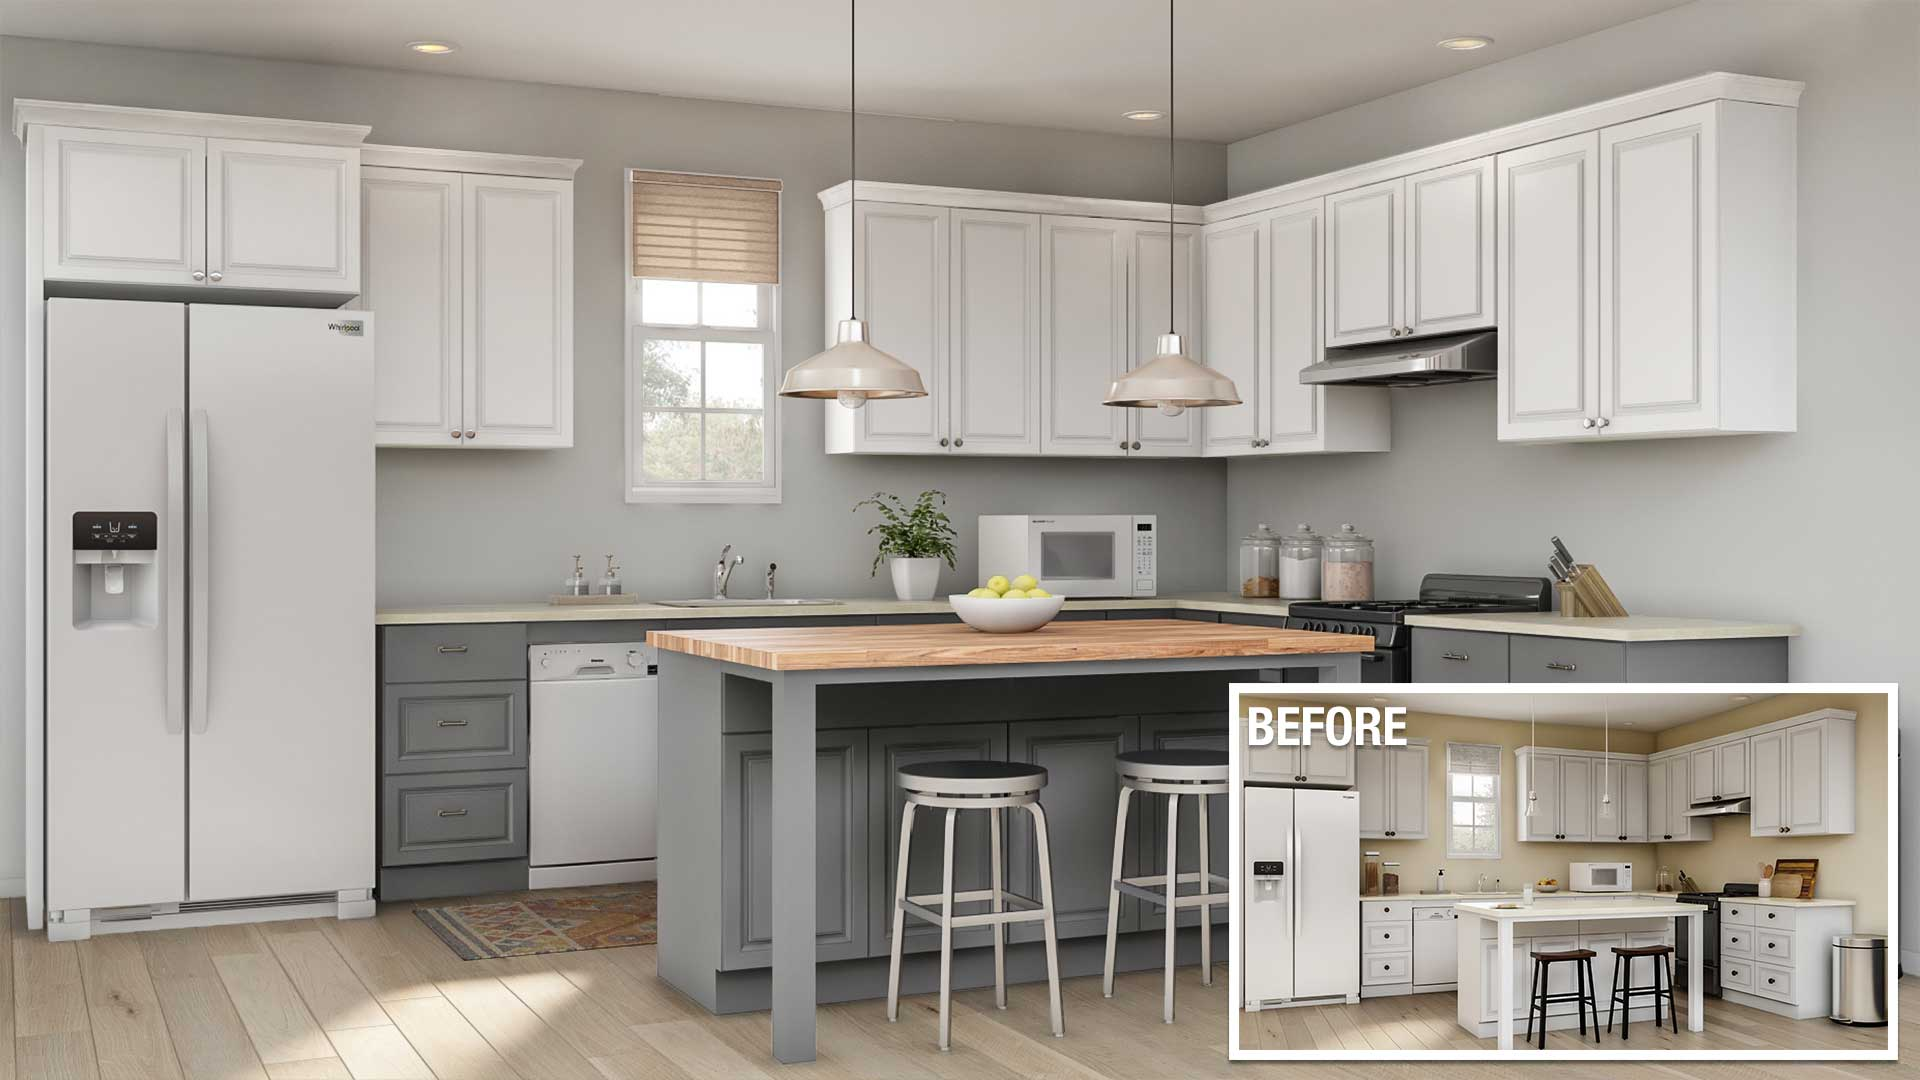 a before and after of a minor kitchen remodel